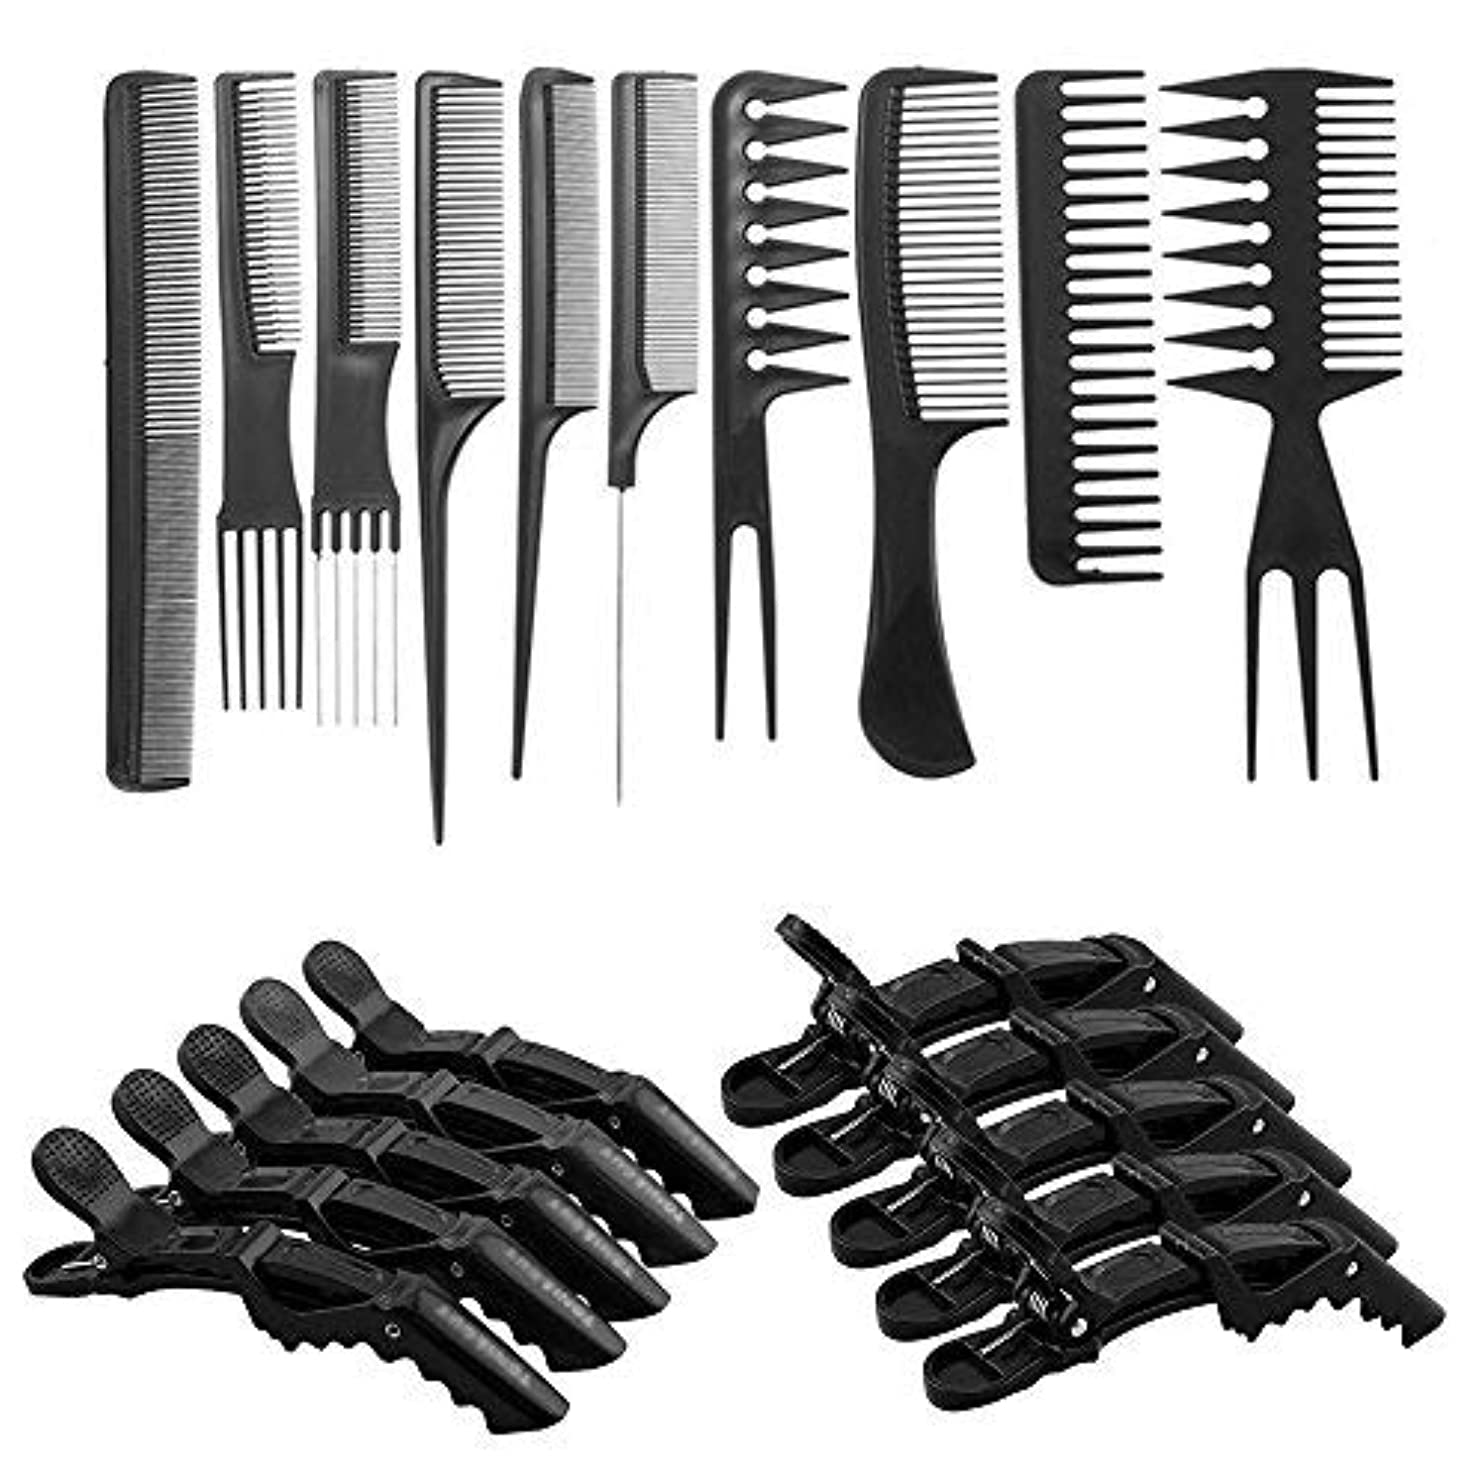 ヨーグルト博物館フラップ10 Pcs Professional Hair Styling Comb Set with Styling Clips [並行輸入品]